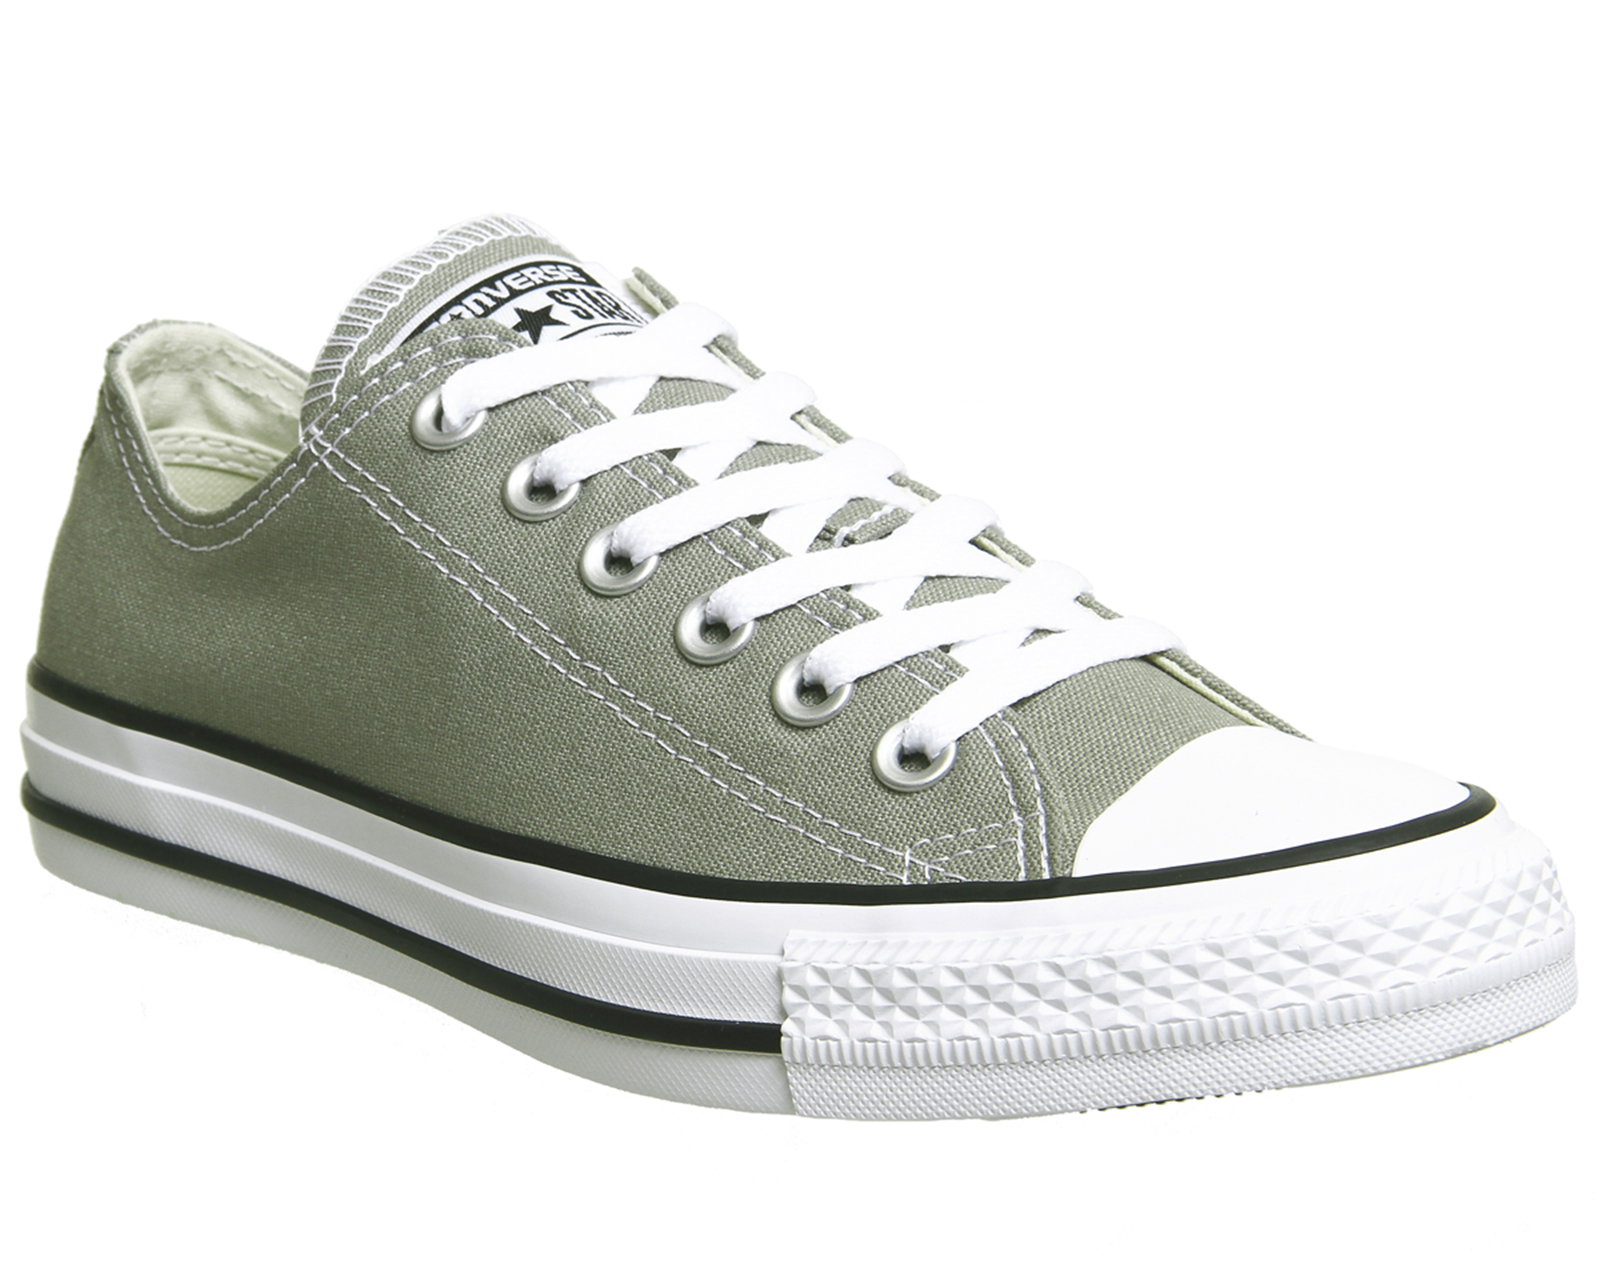 4d5d7585601b Sentinel Mens Converse Converse All Star Low Dark Stucco Trainers Shoes